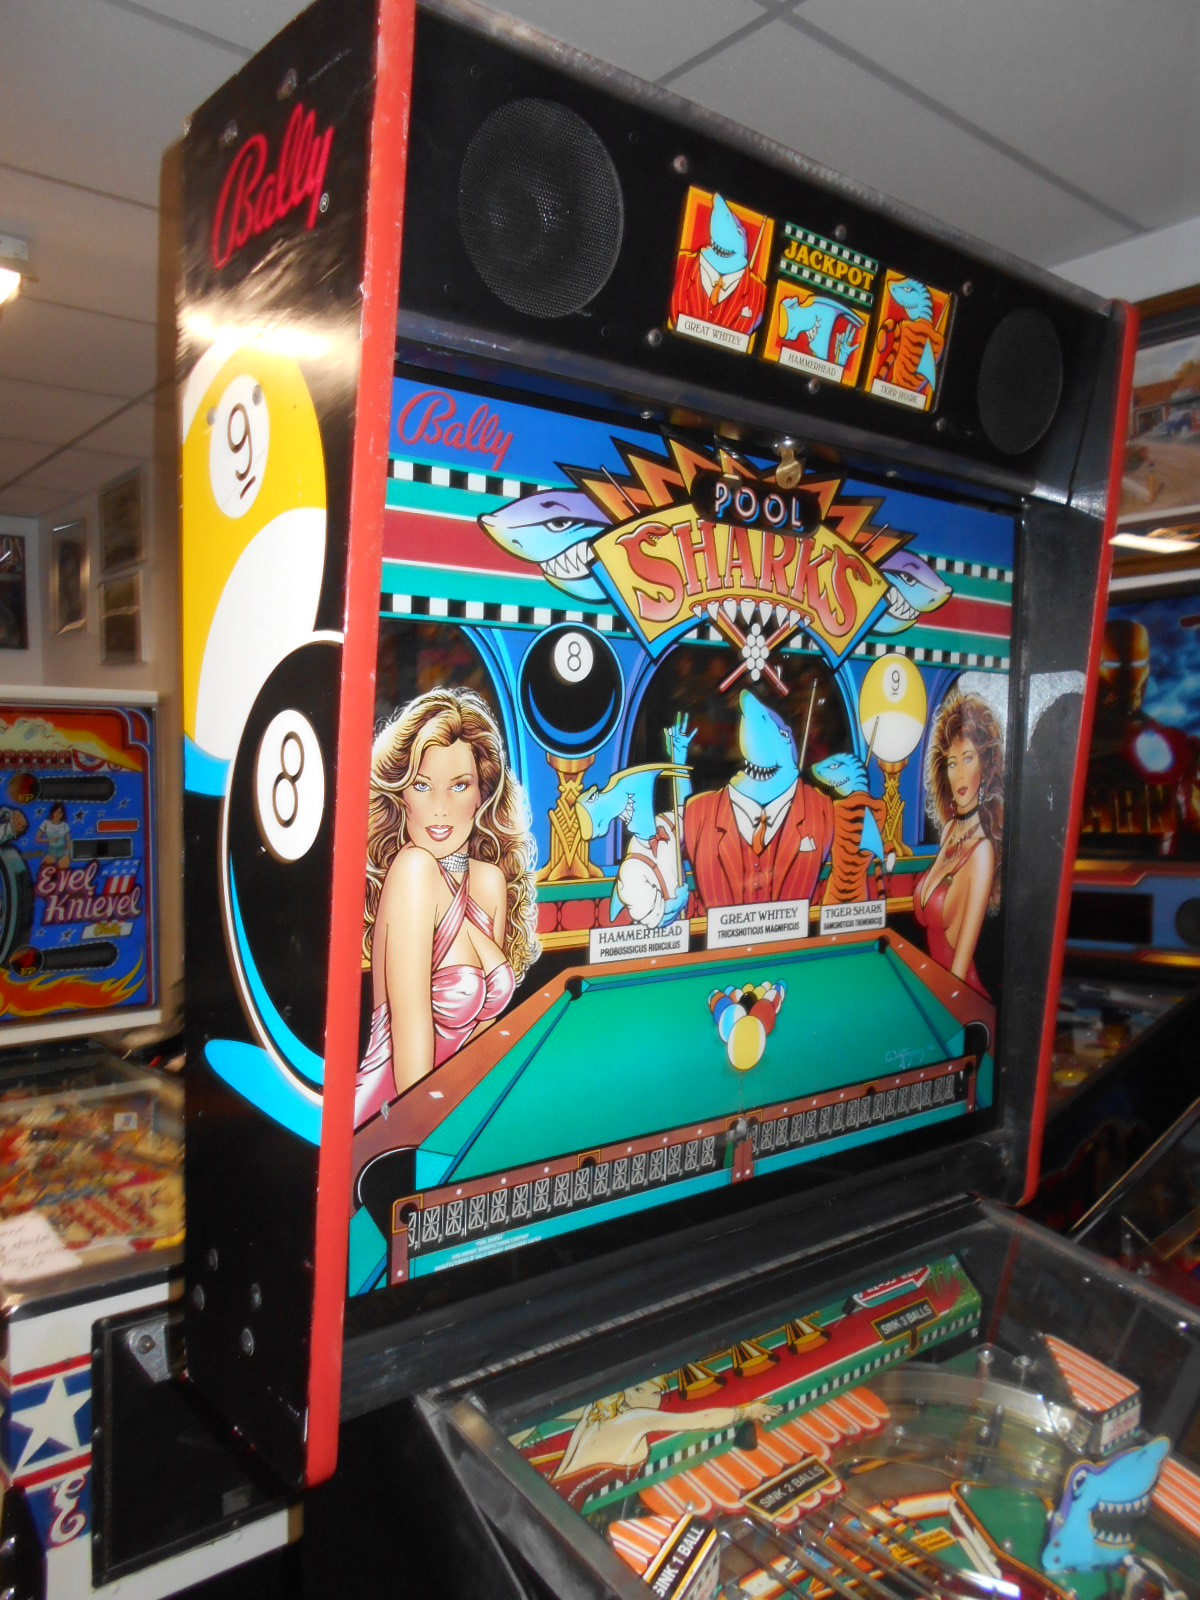 Pool Sharks Pinball Machine Game For Sale By Bally Led